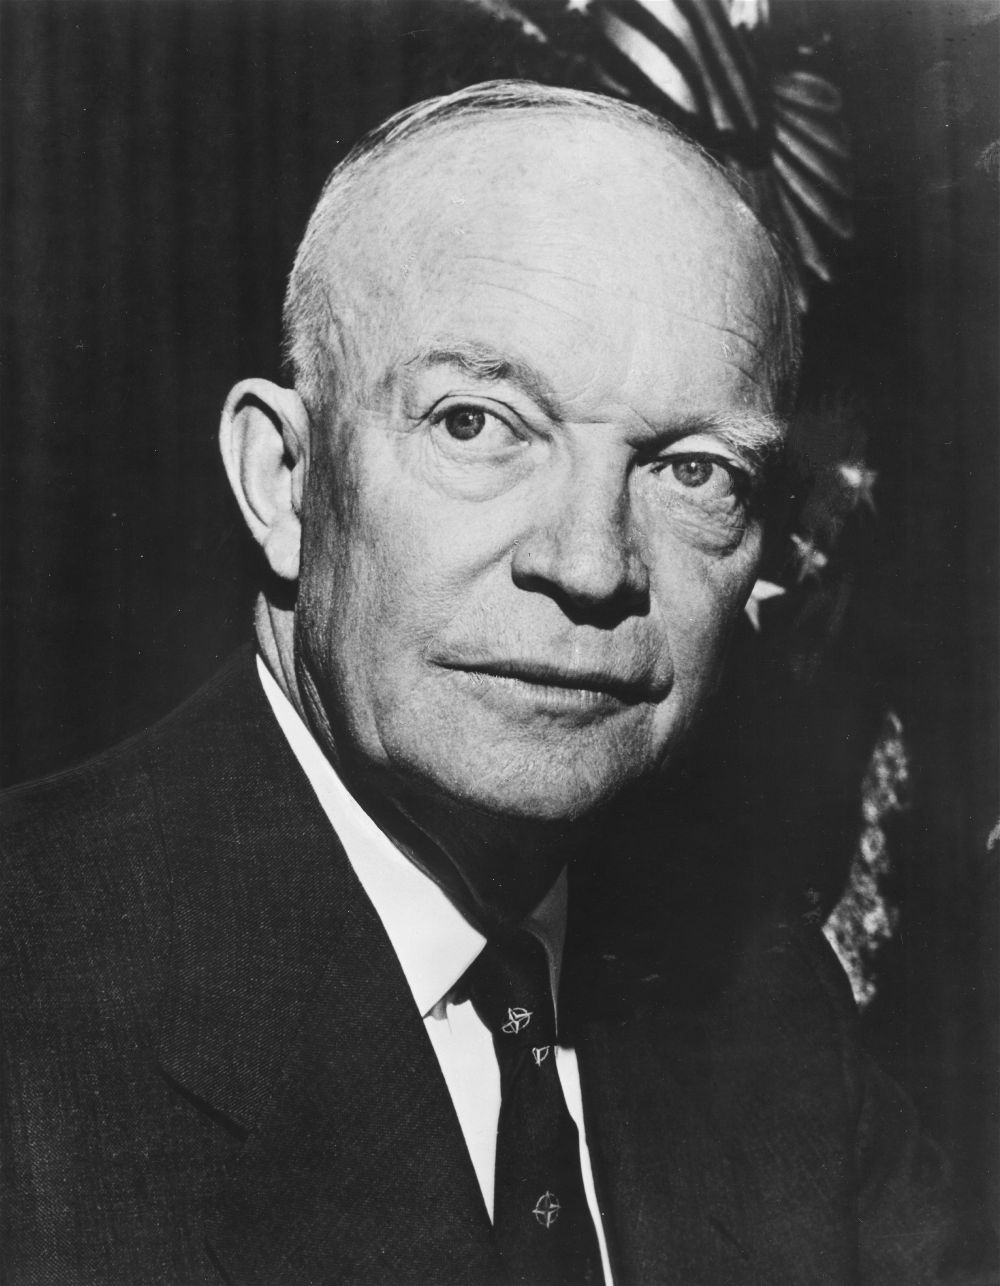 a biography of dwight eisenhower the 34th president of the united states Dwight d eisenhower was the 34th president of the united states who promoted atoms for peace during the cold war learn more at biographycom.